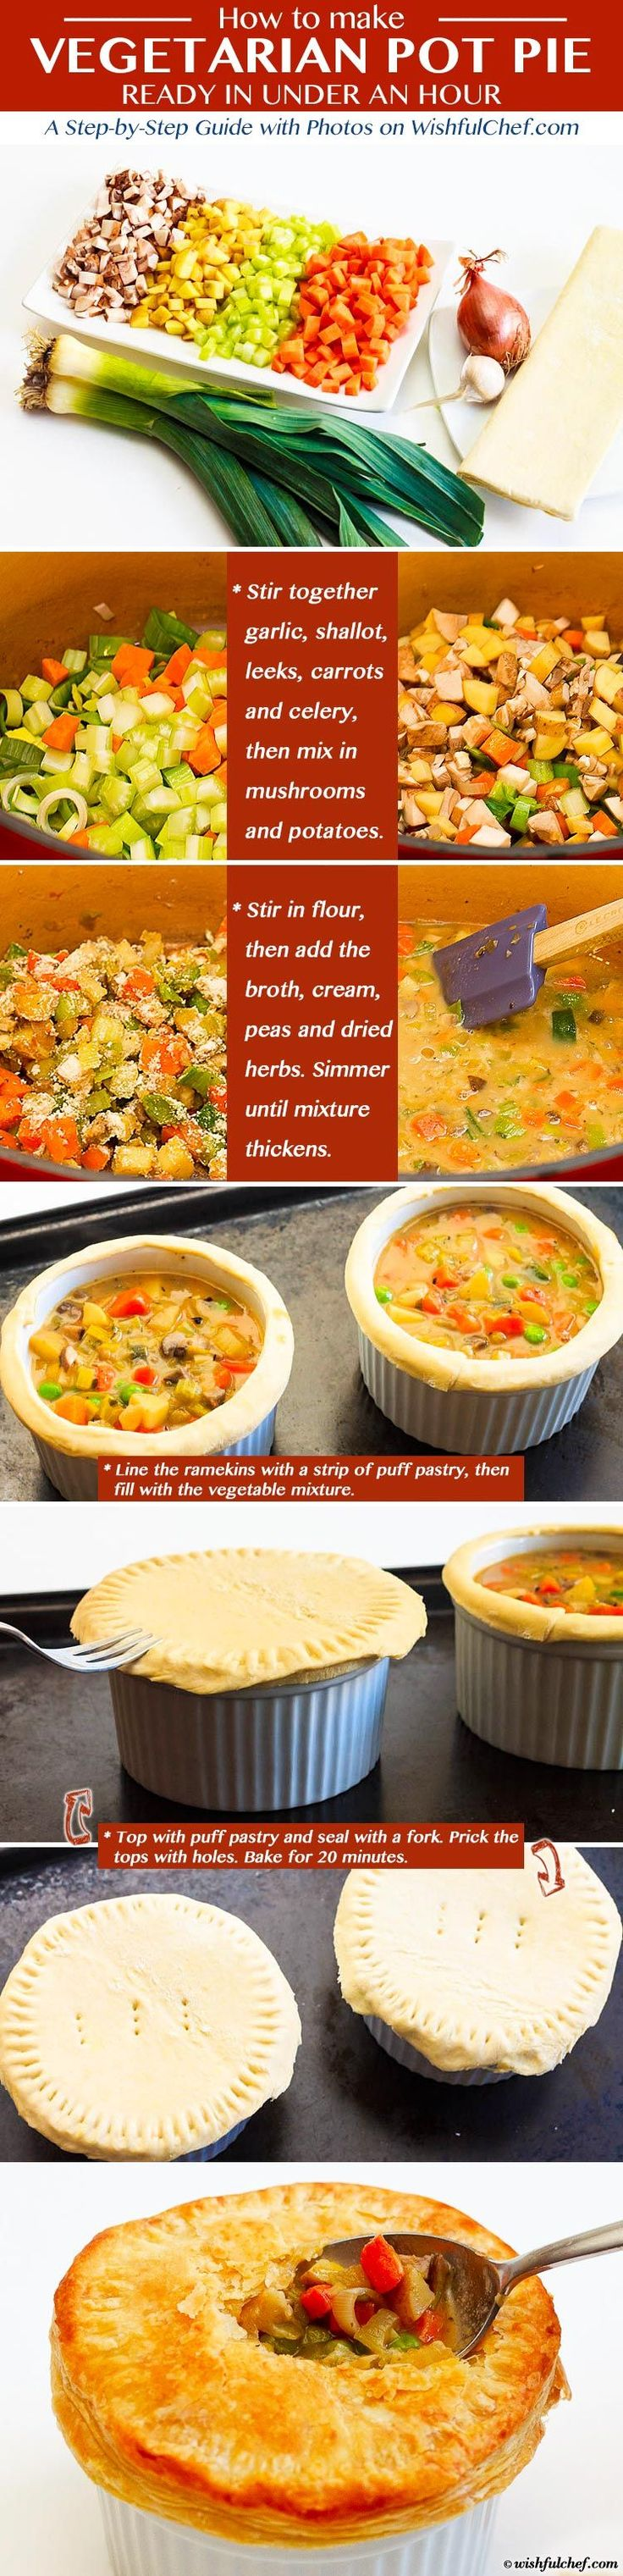 Individual Vegetarian Pot Pies - Ready in Under an Hour // wishfulchef.com #Healthy #Vegetarian